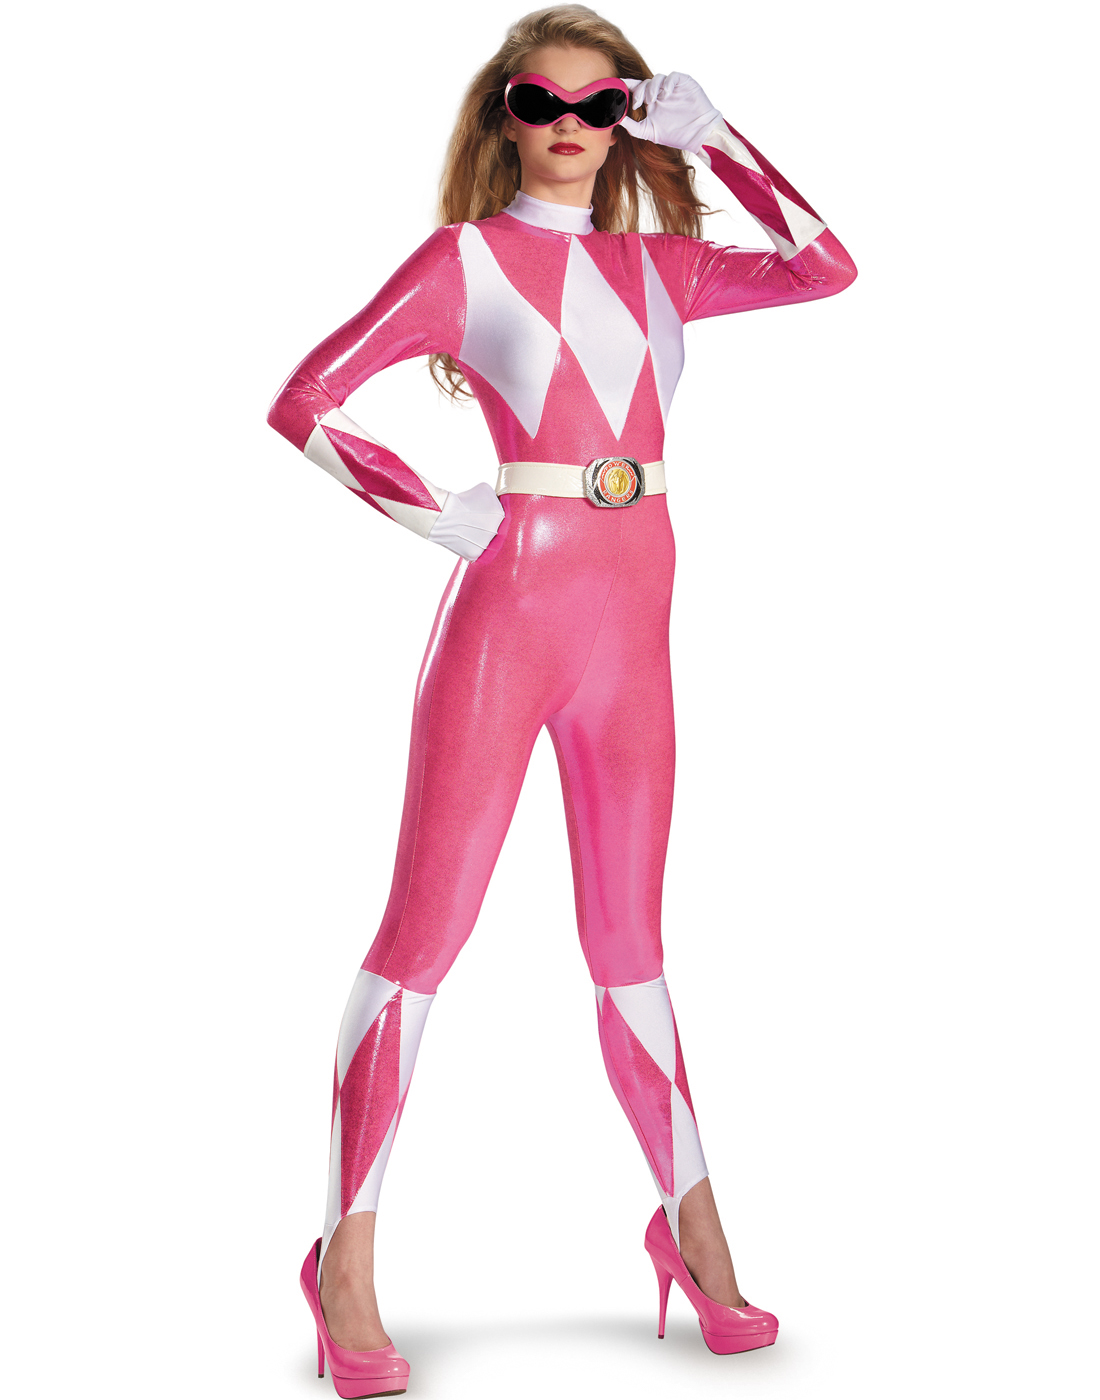 ... Power-Ranger-Pink-Ranger-Sexy-Super-Hero-Bodysuit-  sc 1 st  eBay & Power Ranger Pink Ranger Sexy Super Hero Bodysuit Halloween Costume ...